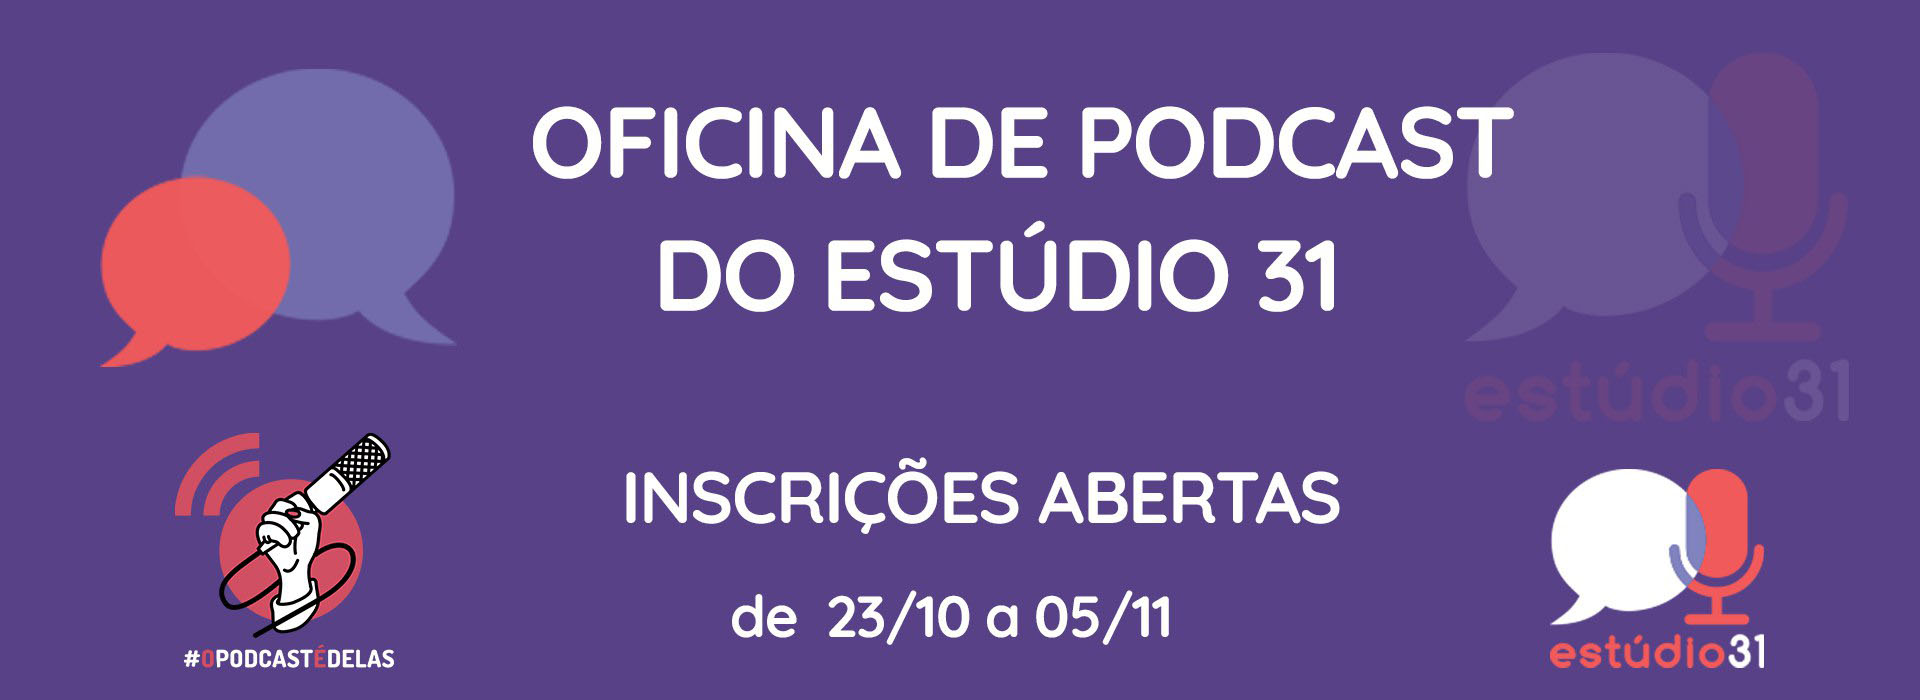 Oficina de Podcast do Estudio 31